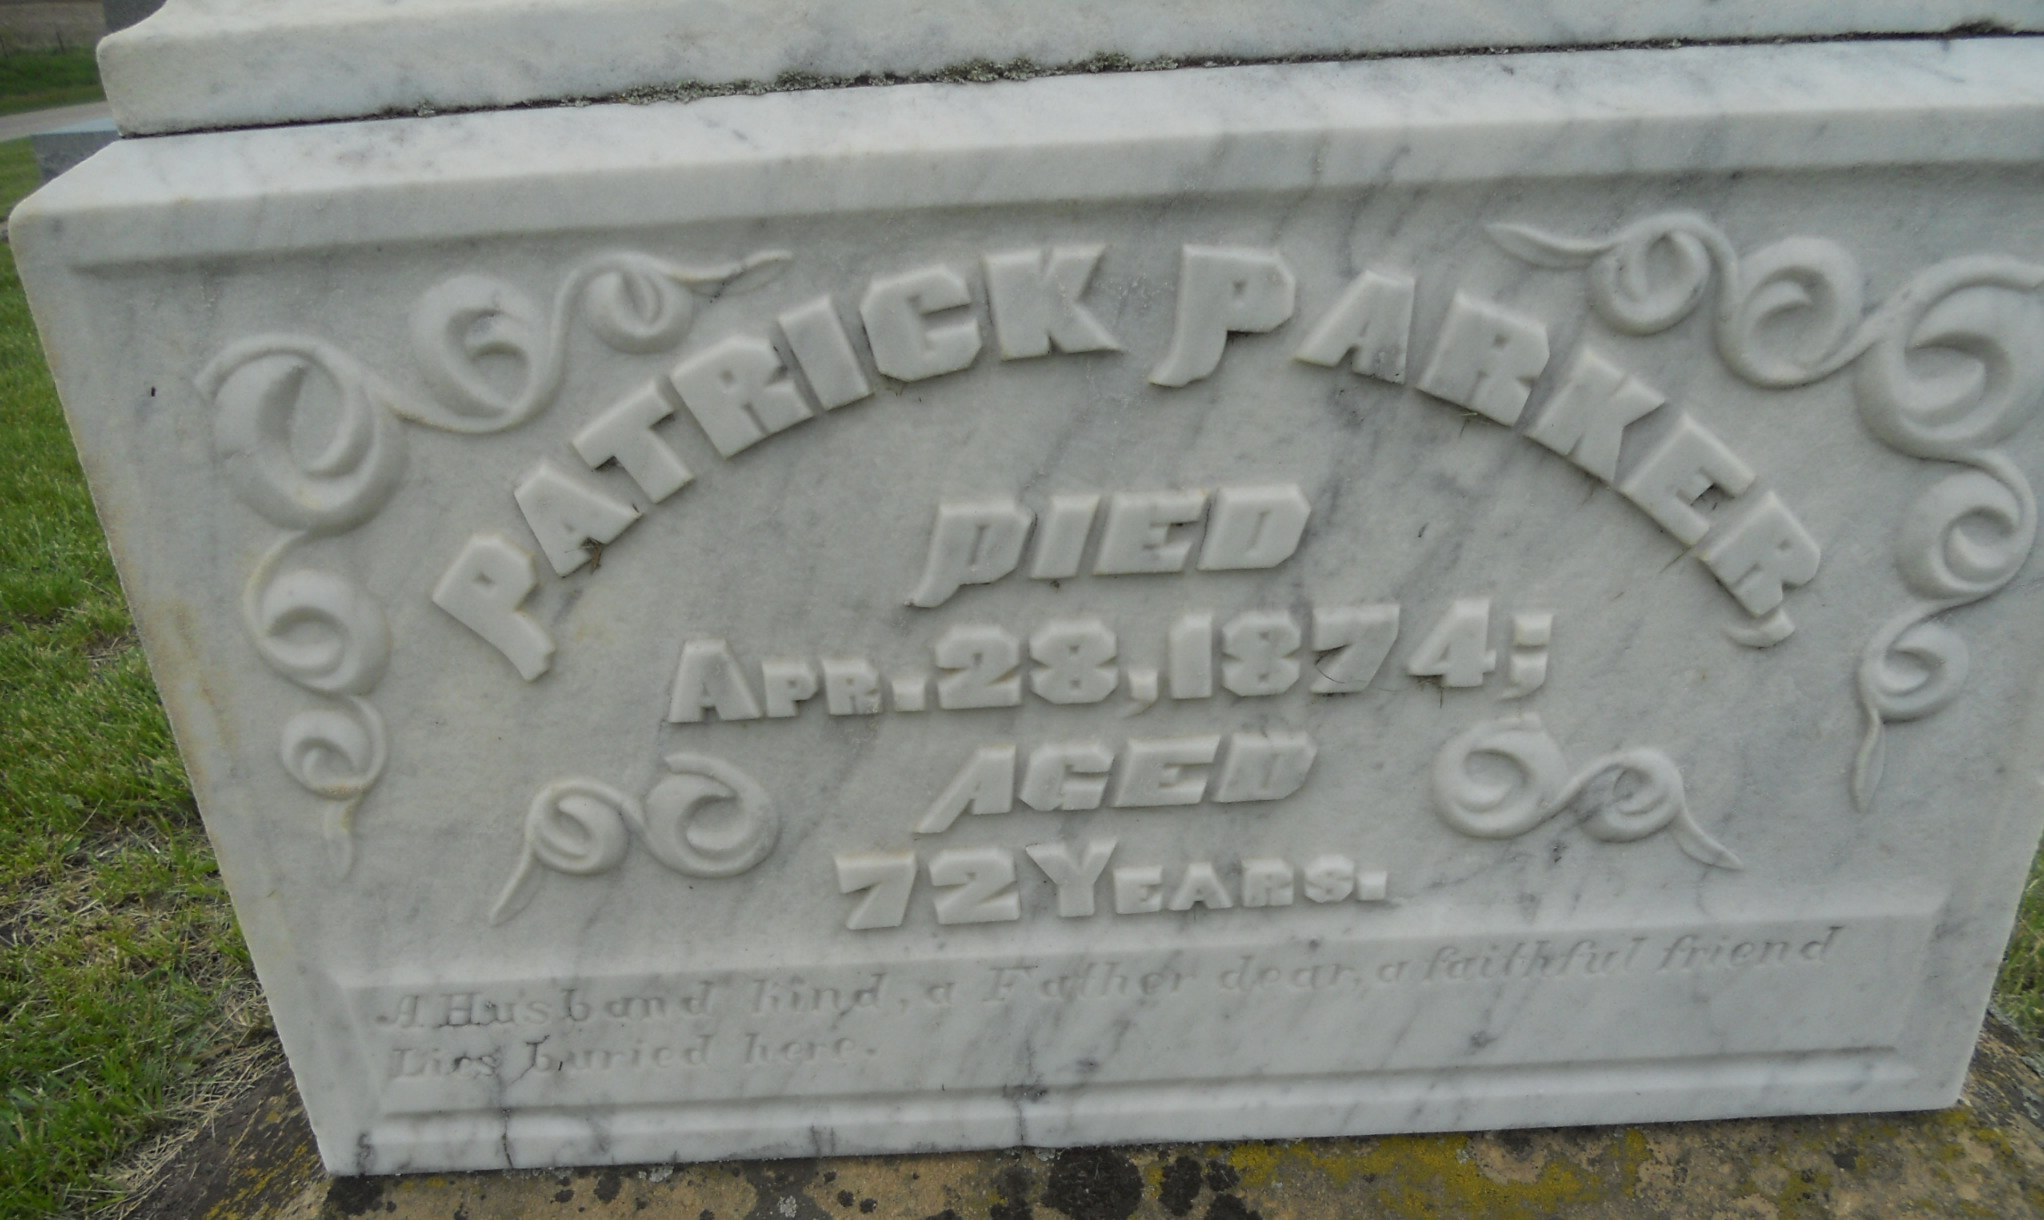 Grave marker for Patrick Parker in Saint Mary's Cemetery, Franklin County Iowa